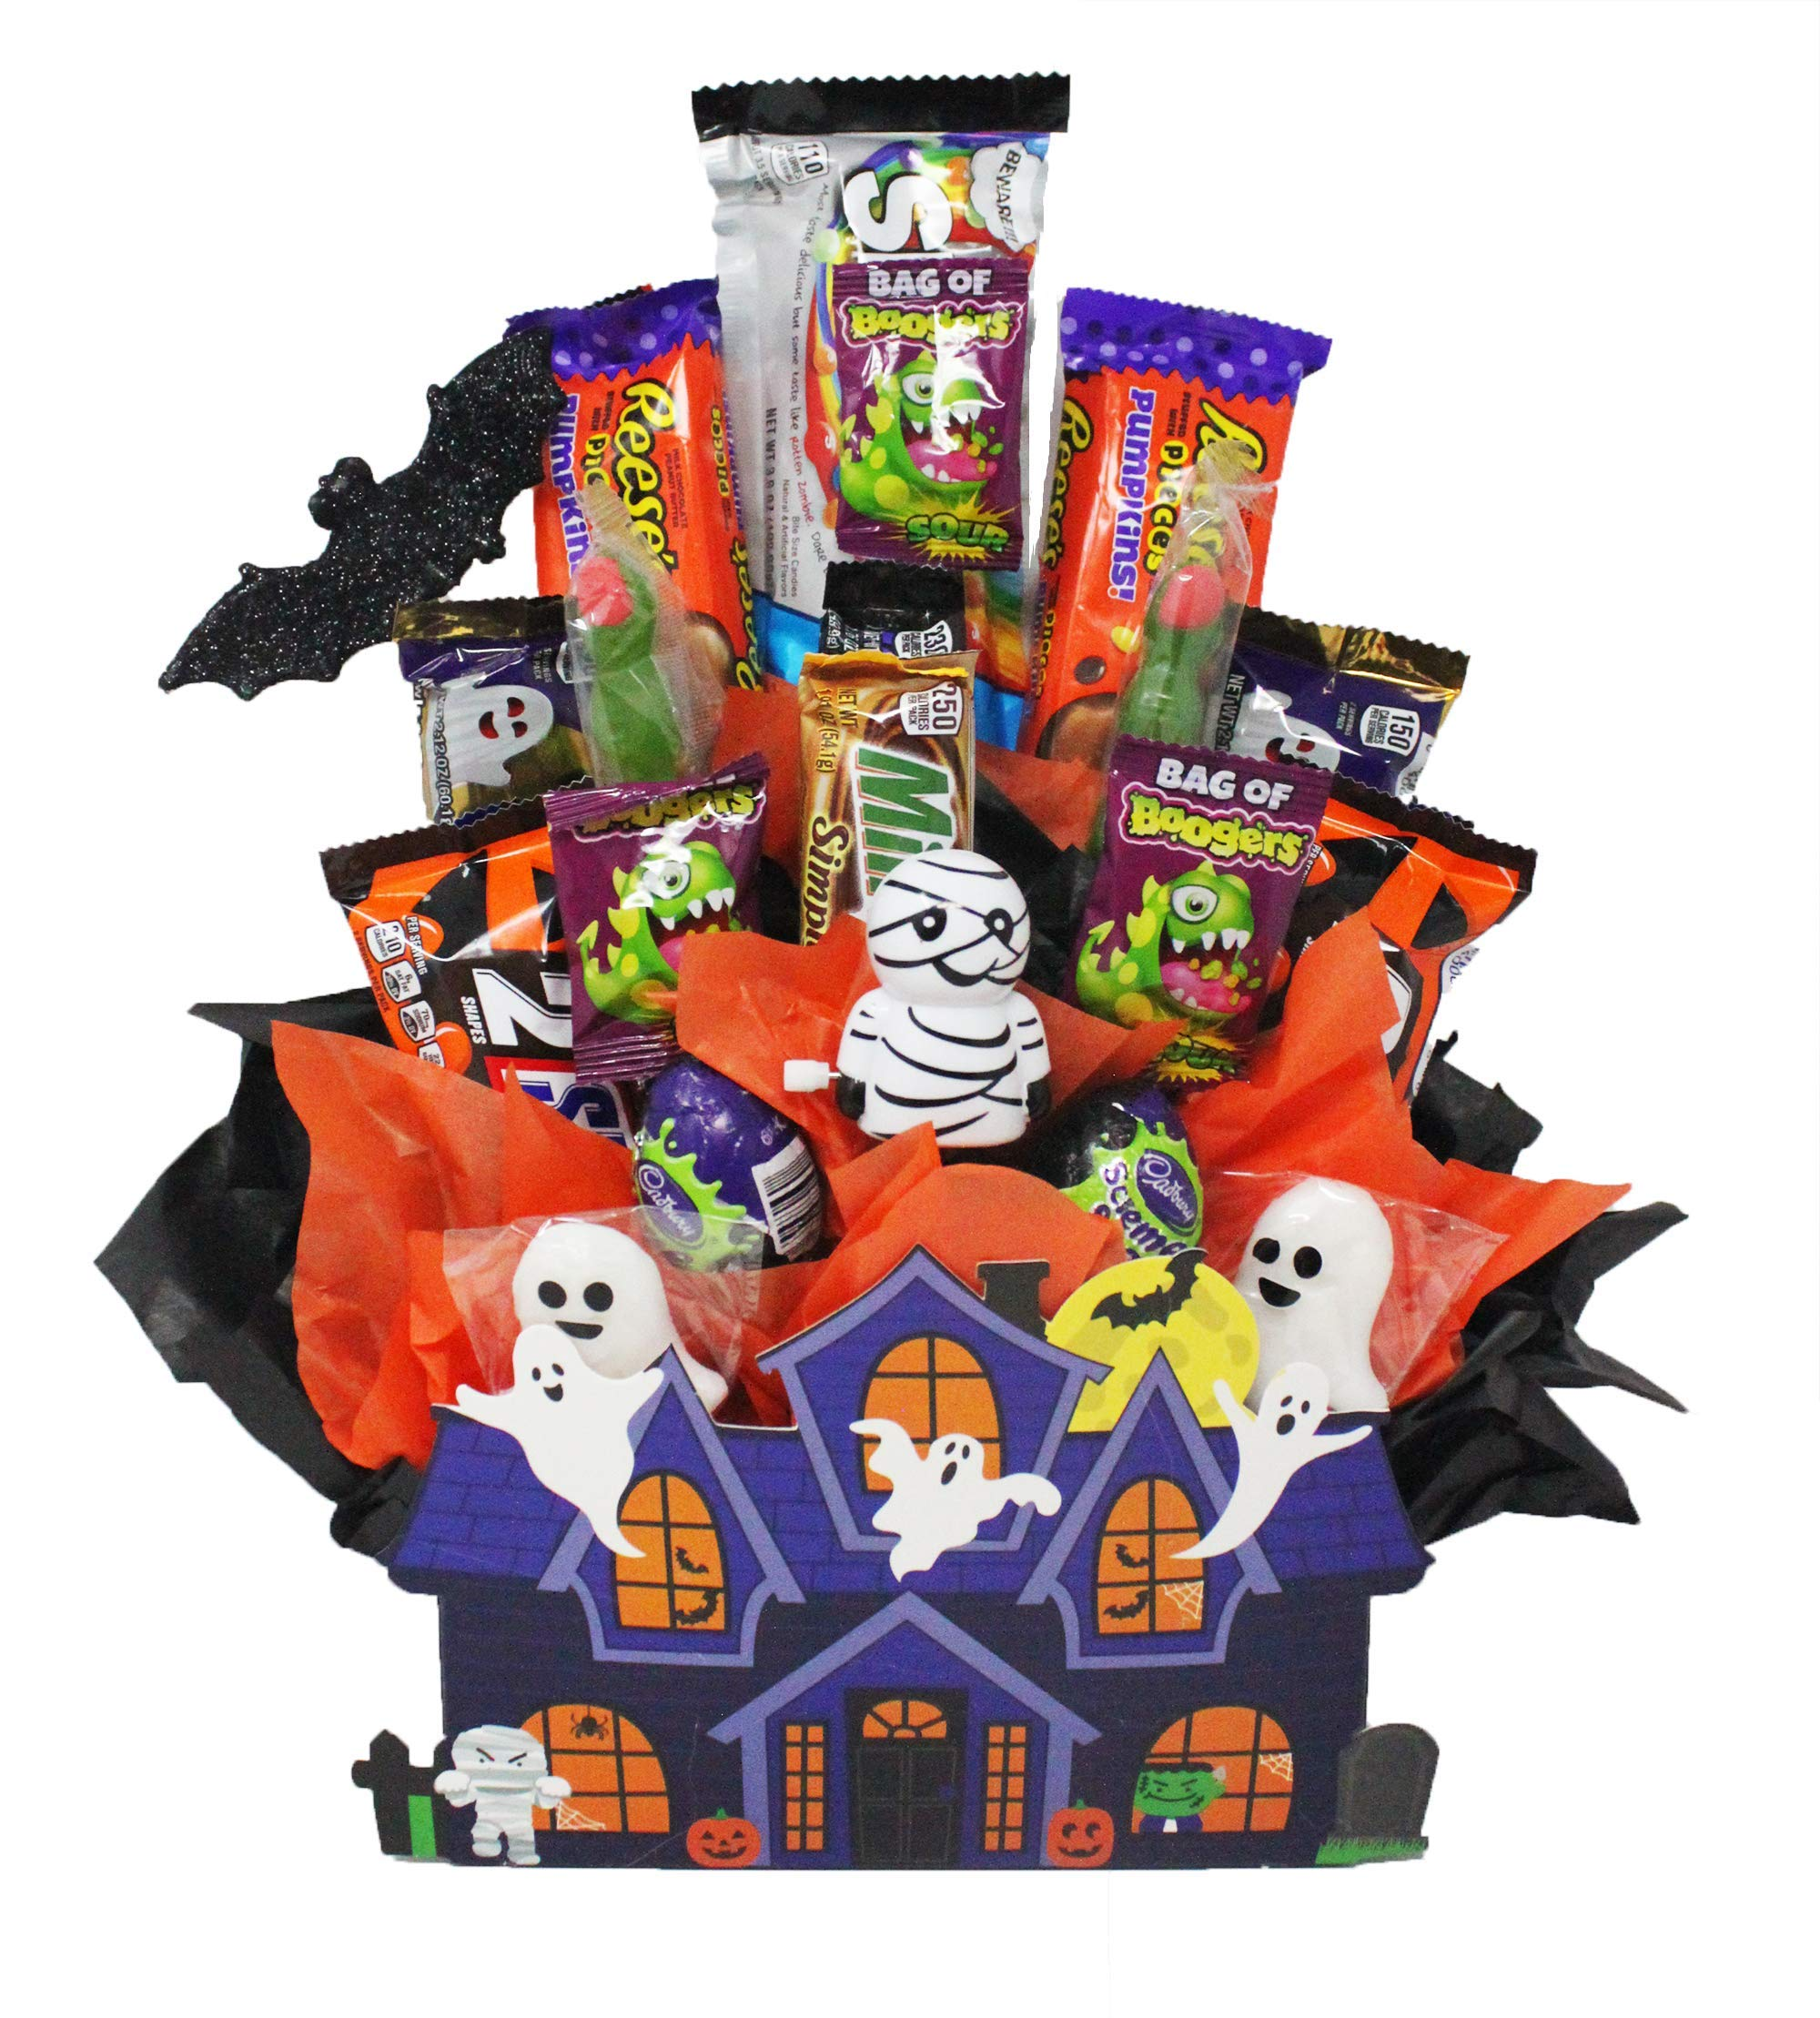 Around the Clock Gifts Ghoulish Haunted House Halloween Candy Bouquet loaded with Cadbury Green Scream Eggs, Twix Ghosts, Snickers Jack-o-lanterns, Reese's Pieces Pumpkins and other assorted candy. by Online 24/7 LLC